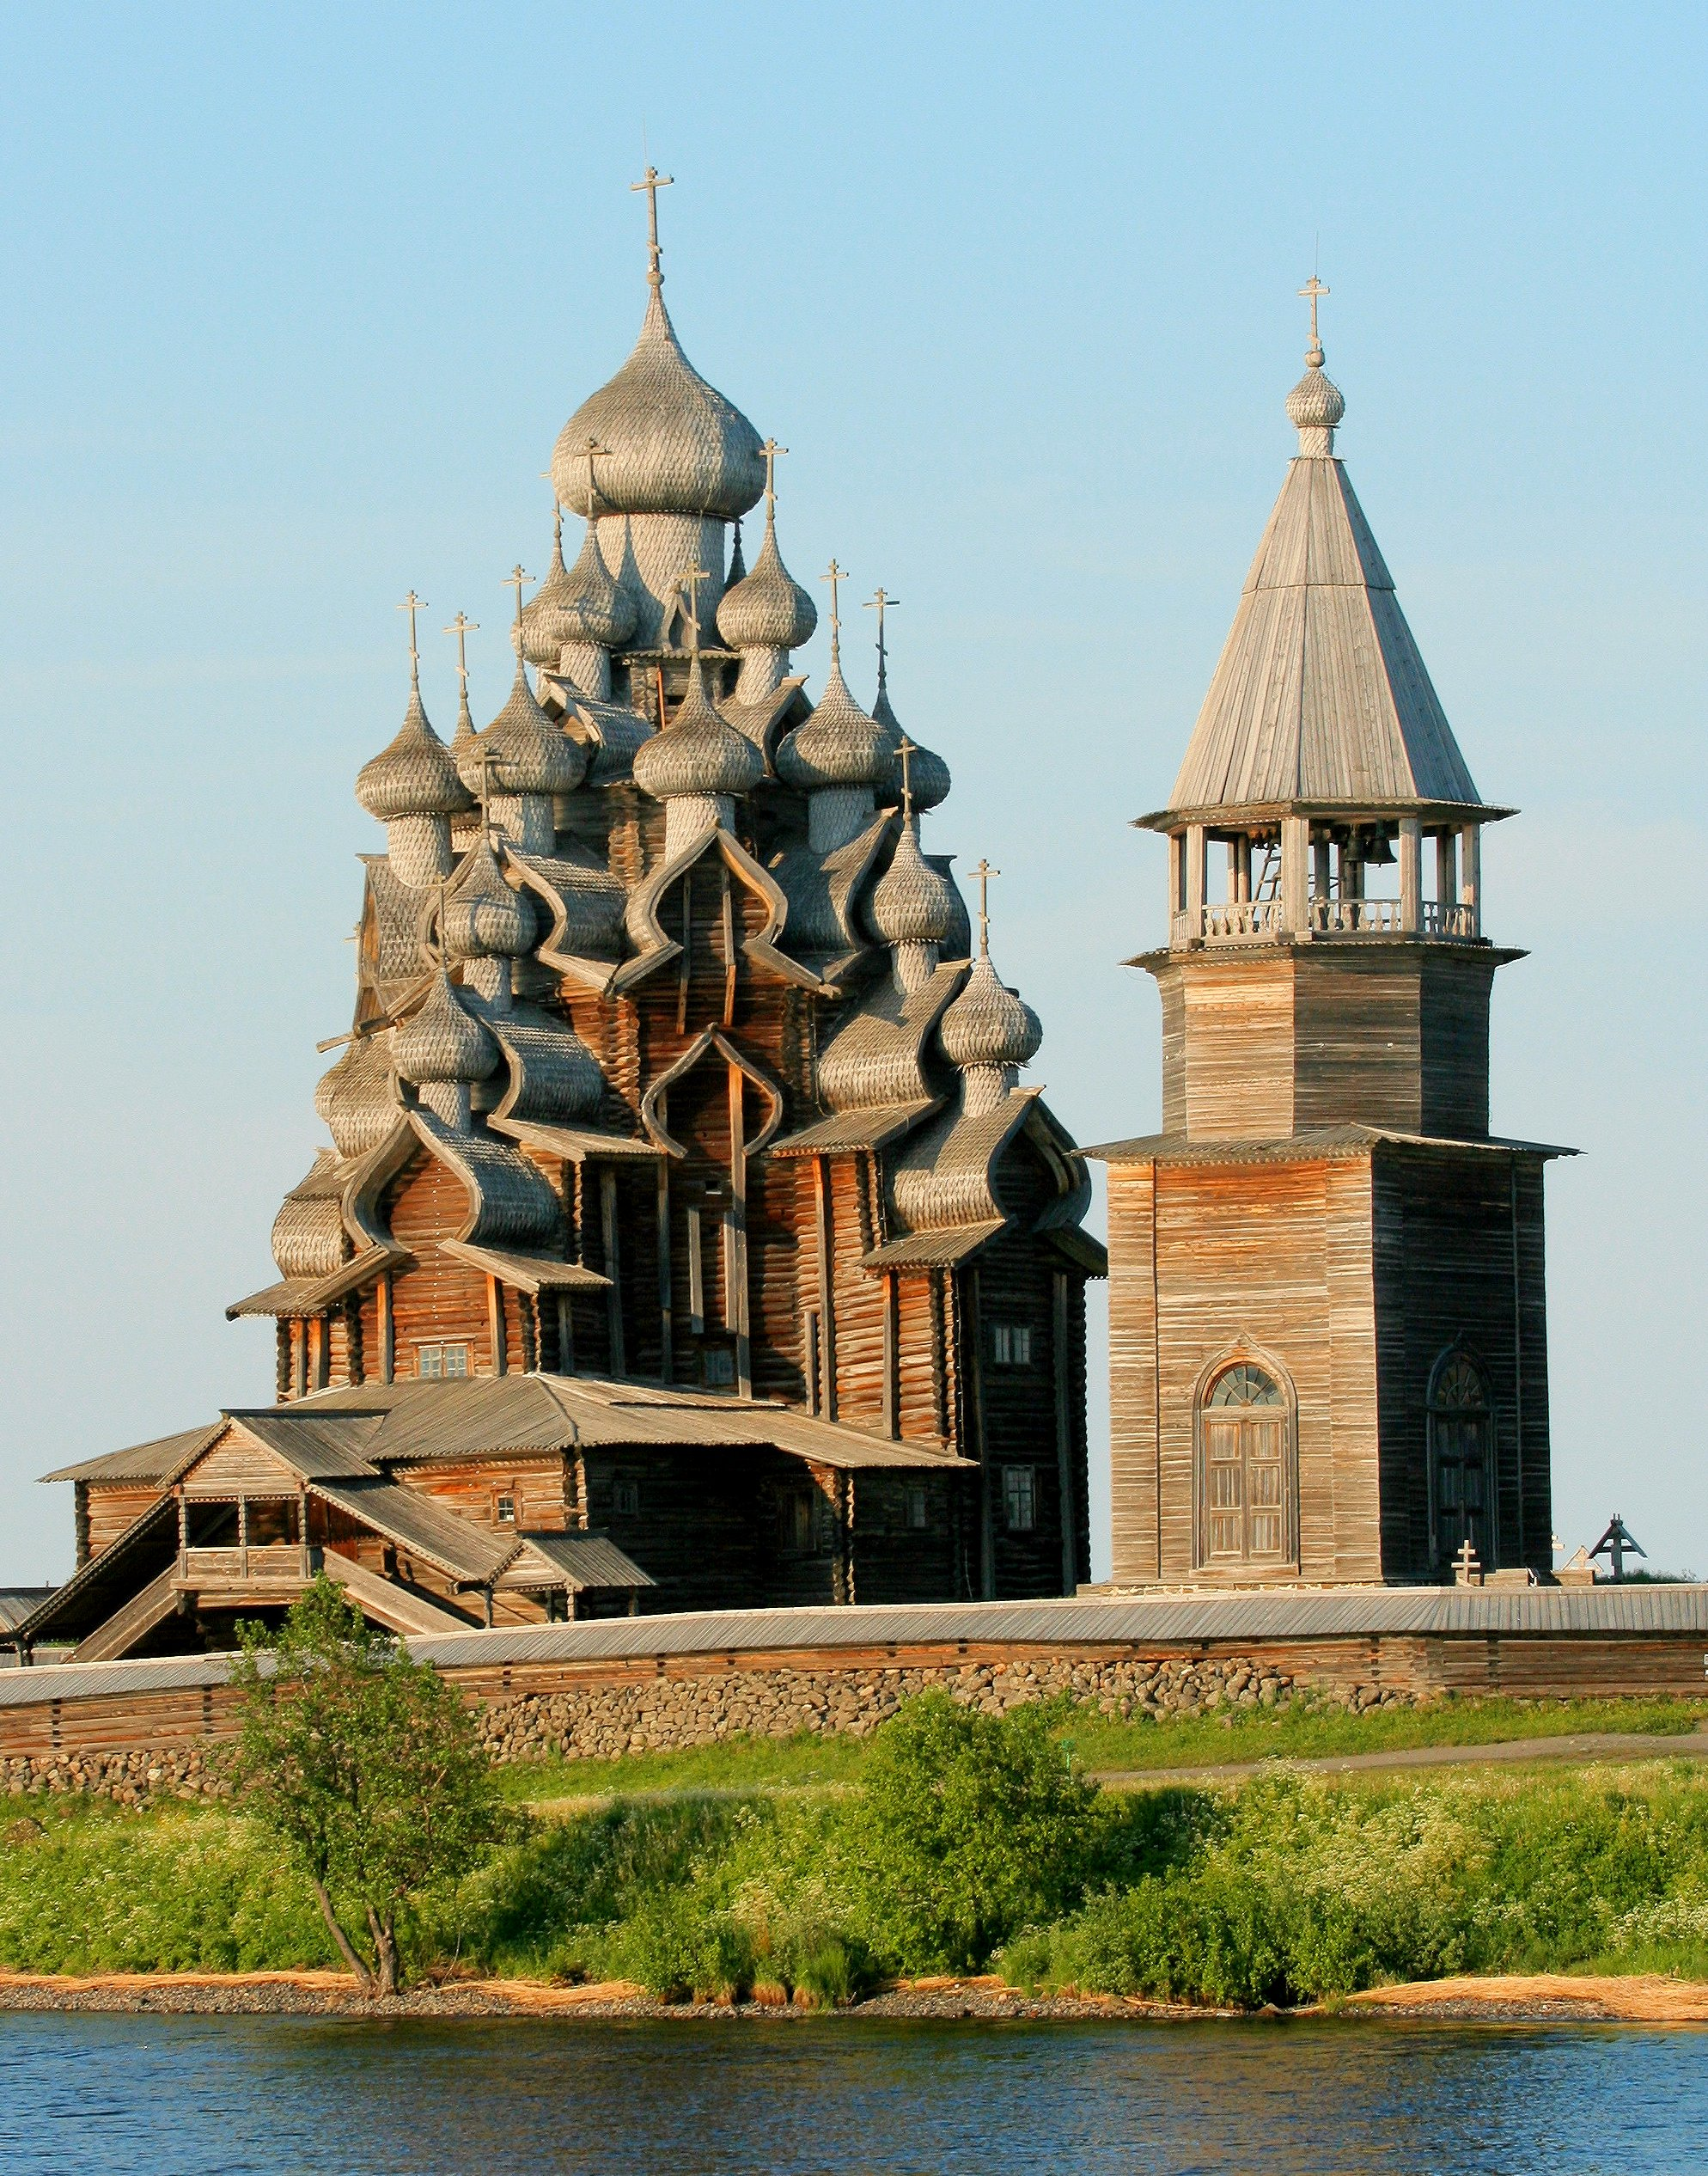 'Kizhi church 1' by User:MatthiasKabel (Own work) [GFDL (http://www.gnu.org/copyleft/fdl.html) or CC-BY-SA-3.0 (http://creativecommons.org/licenses/by-sa/3.0/)], via Wikimedia Commons